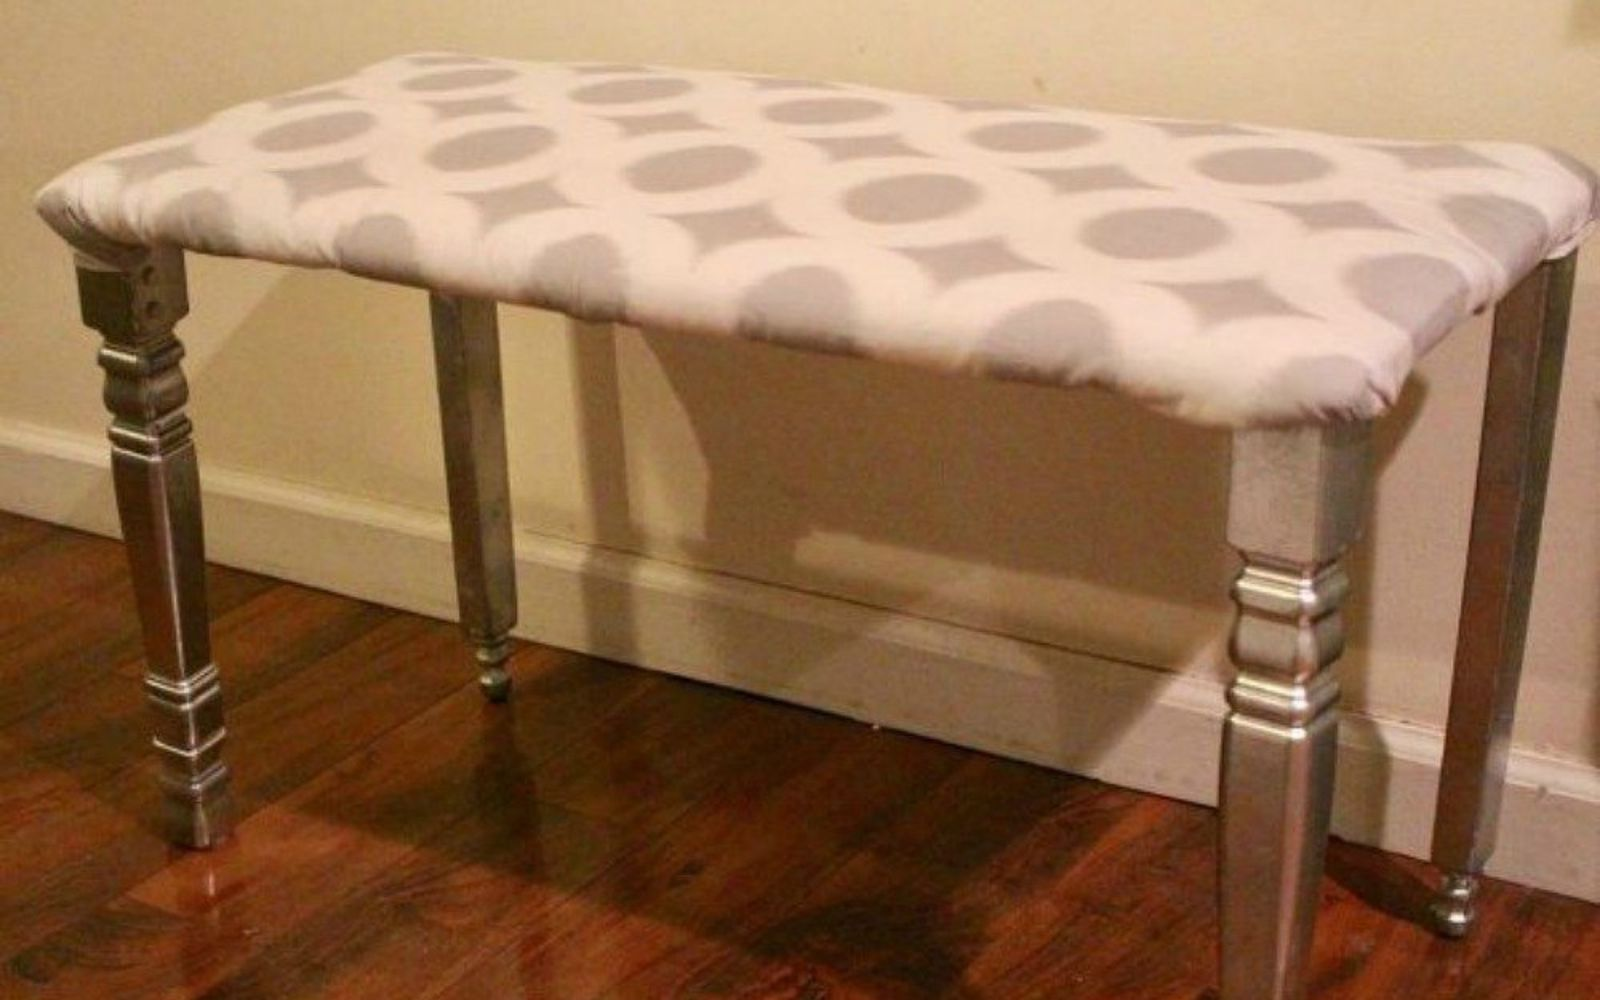 s 10 surprising ways to turn old furniture into extra seating, painted furniture, After A simple dining room bench